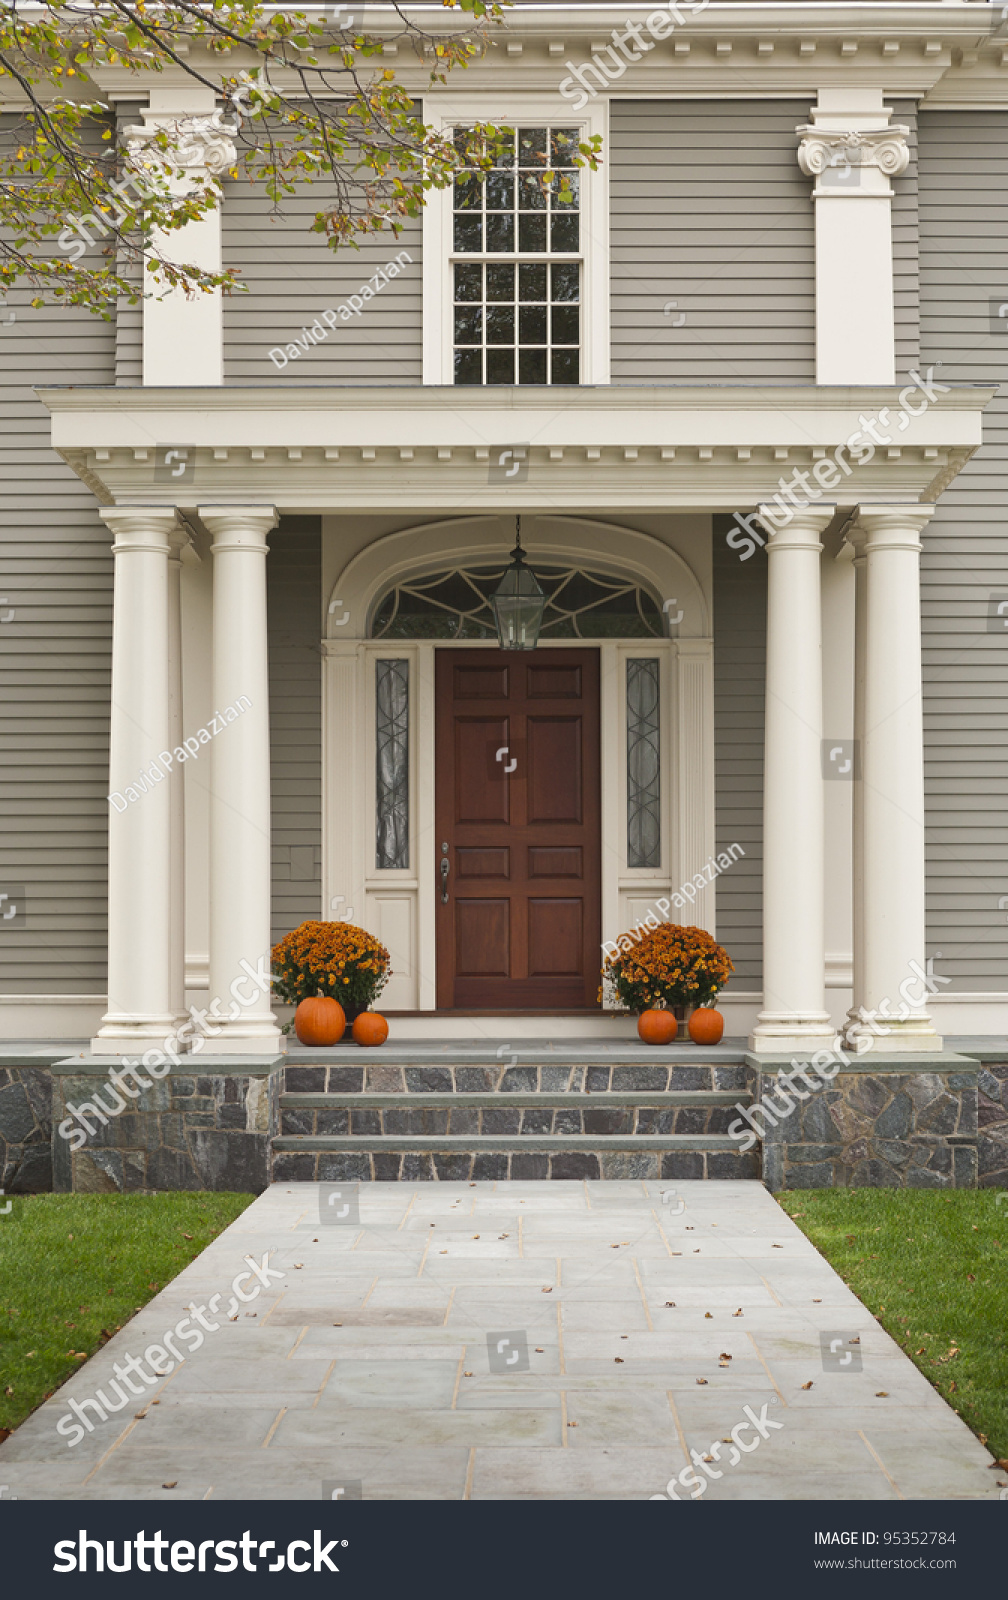 Front Door of Home showing two pillars with arch and twin flowerpots with four pumpkins & Front Door Home Showing Two Pillars Stock Photo 95352784 ... Pezcame.Com